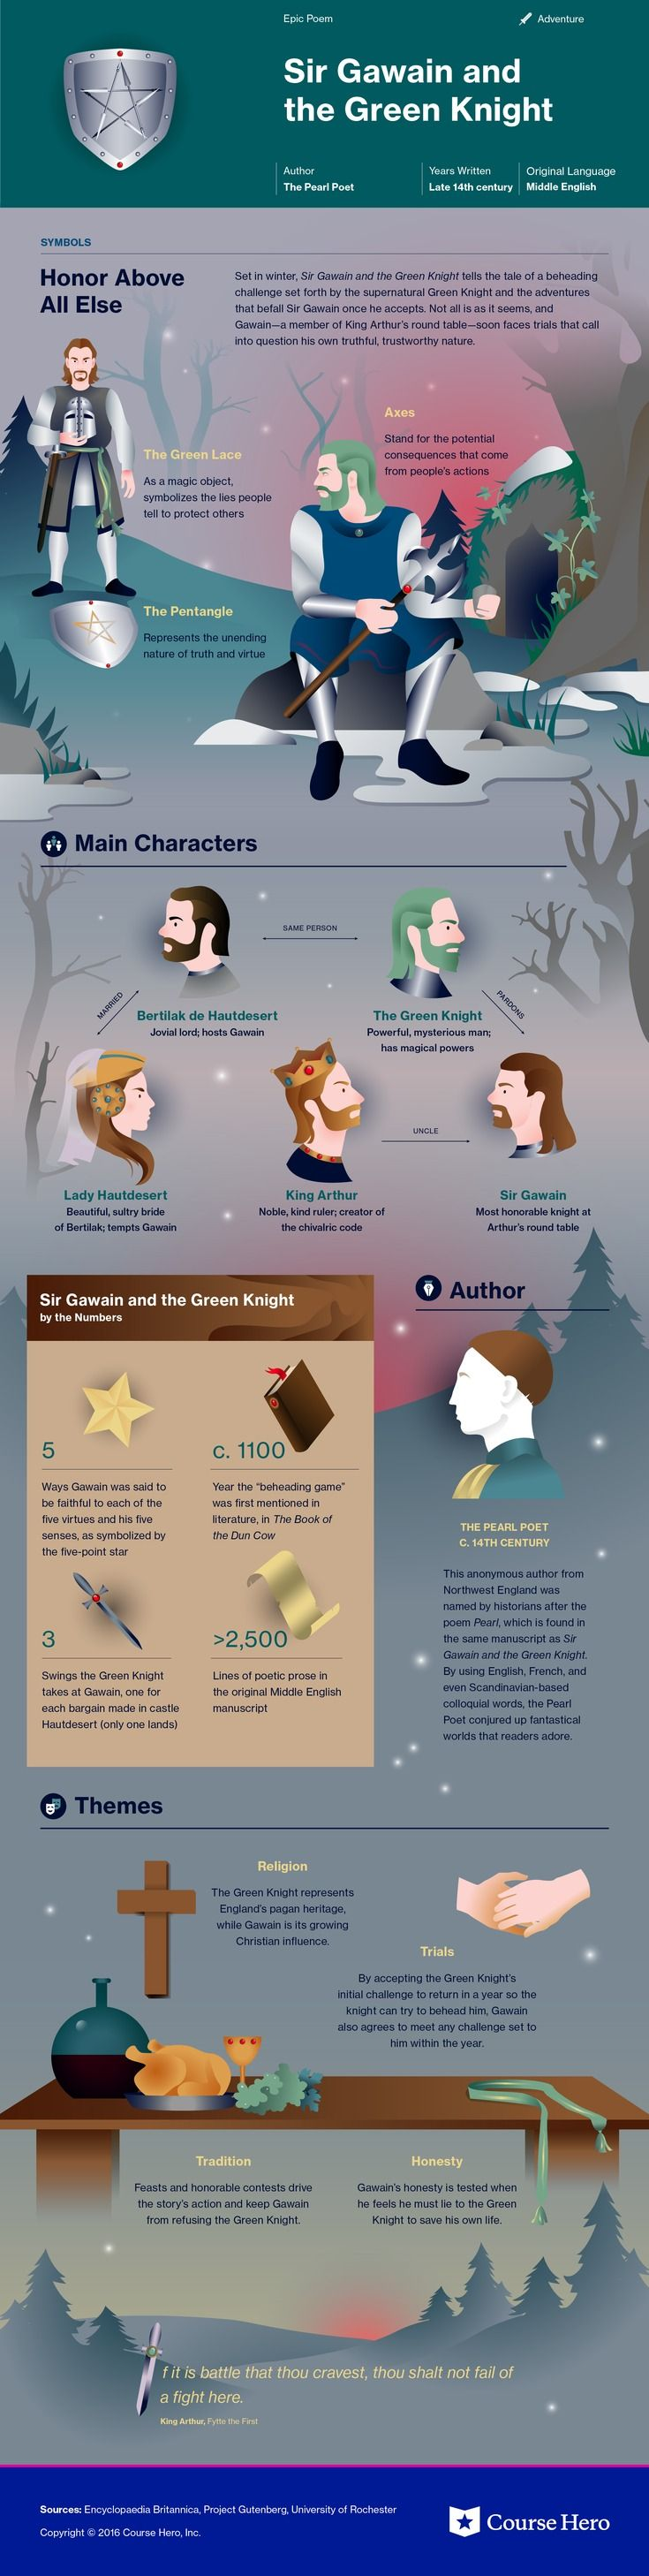 17 best images about graphics heroes awesome and sir gawain and the green knight course hero infographic